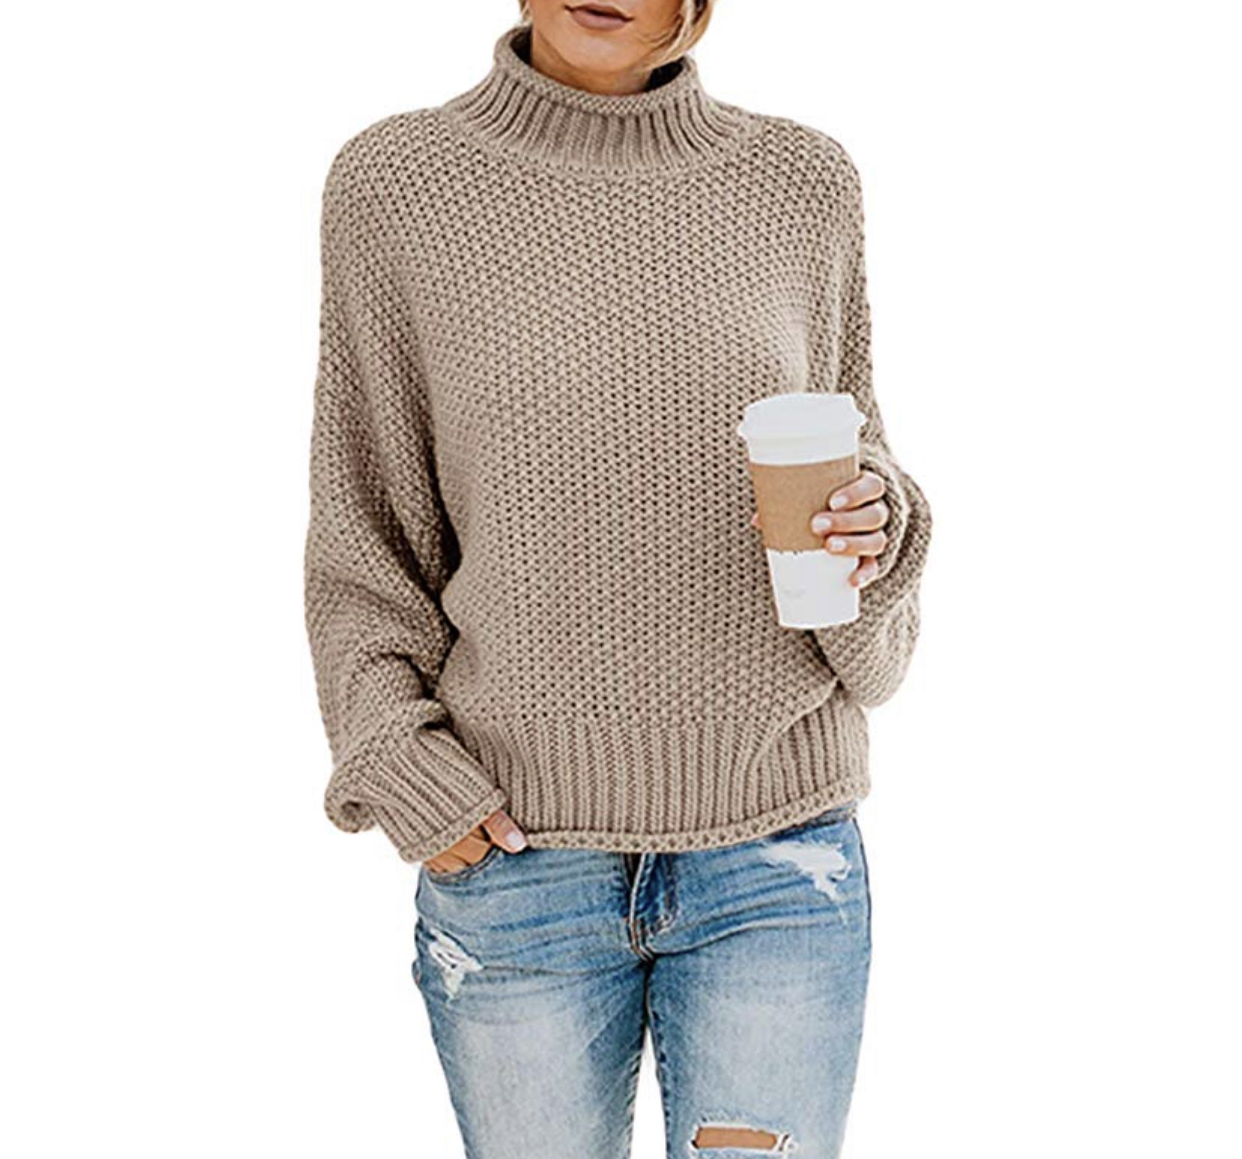 The Best Amazon Basics, the best wardrobe basics from Amazon, chunky mock neck sweater